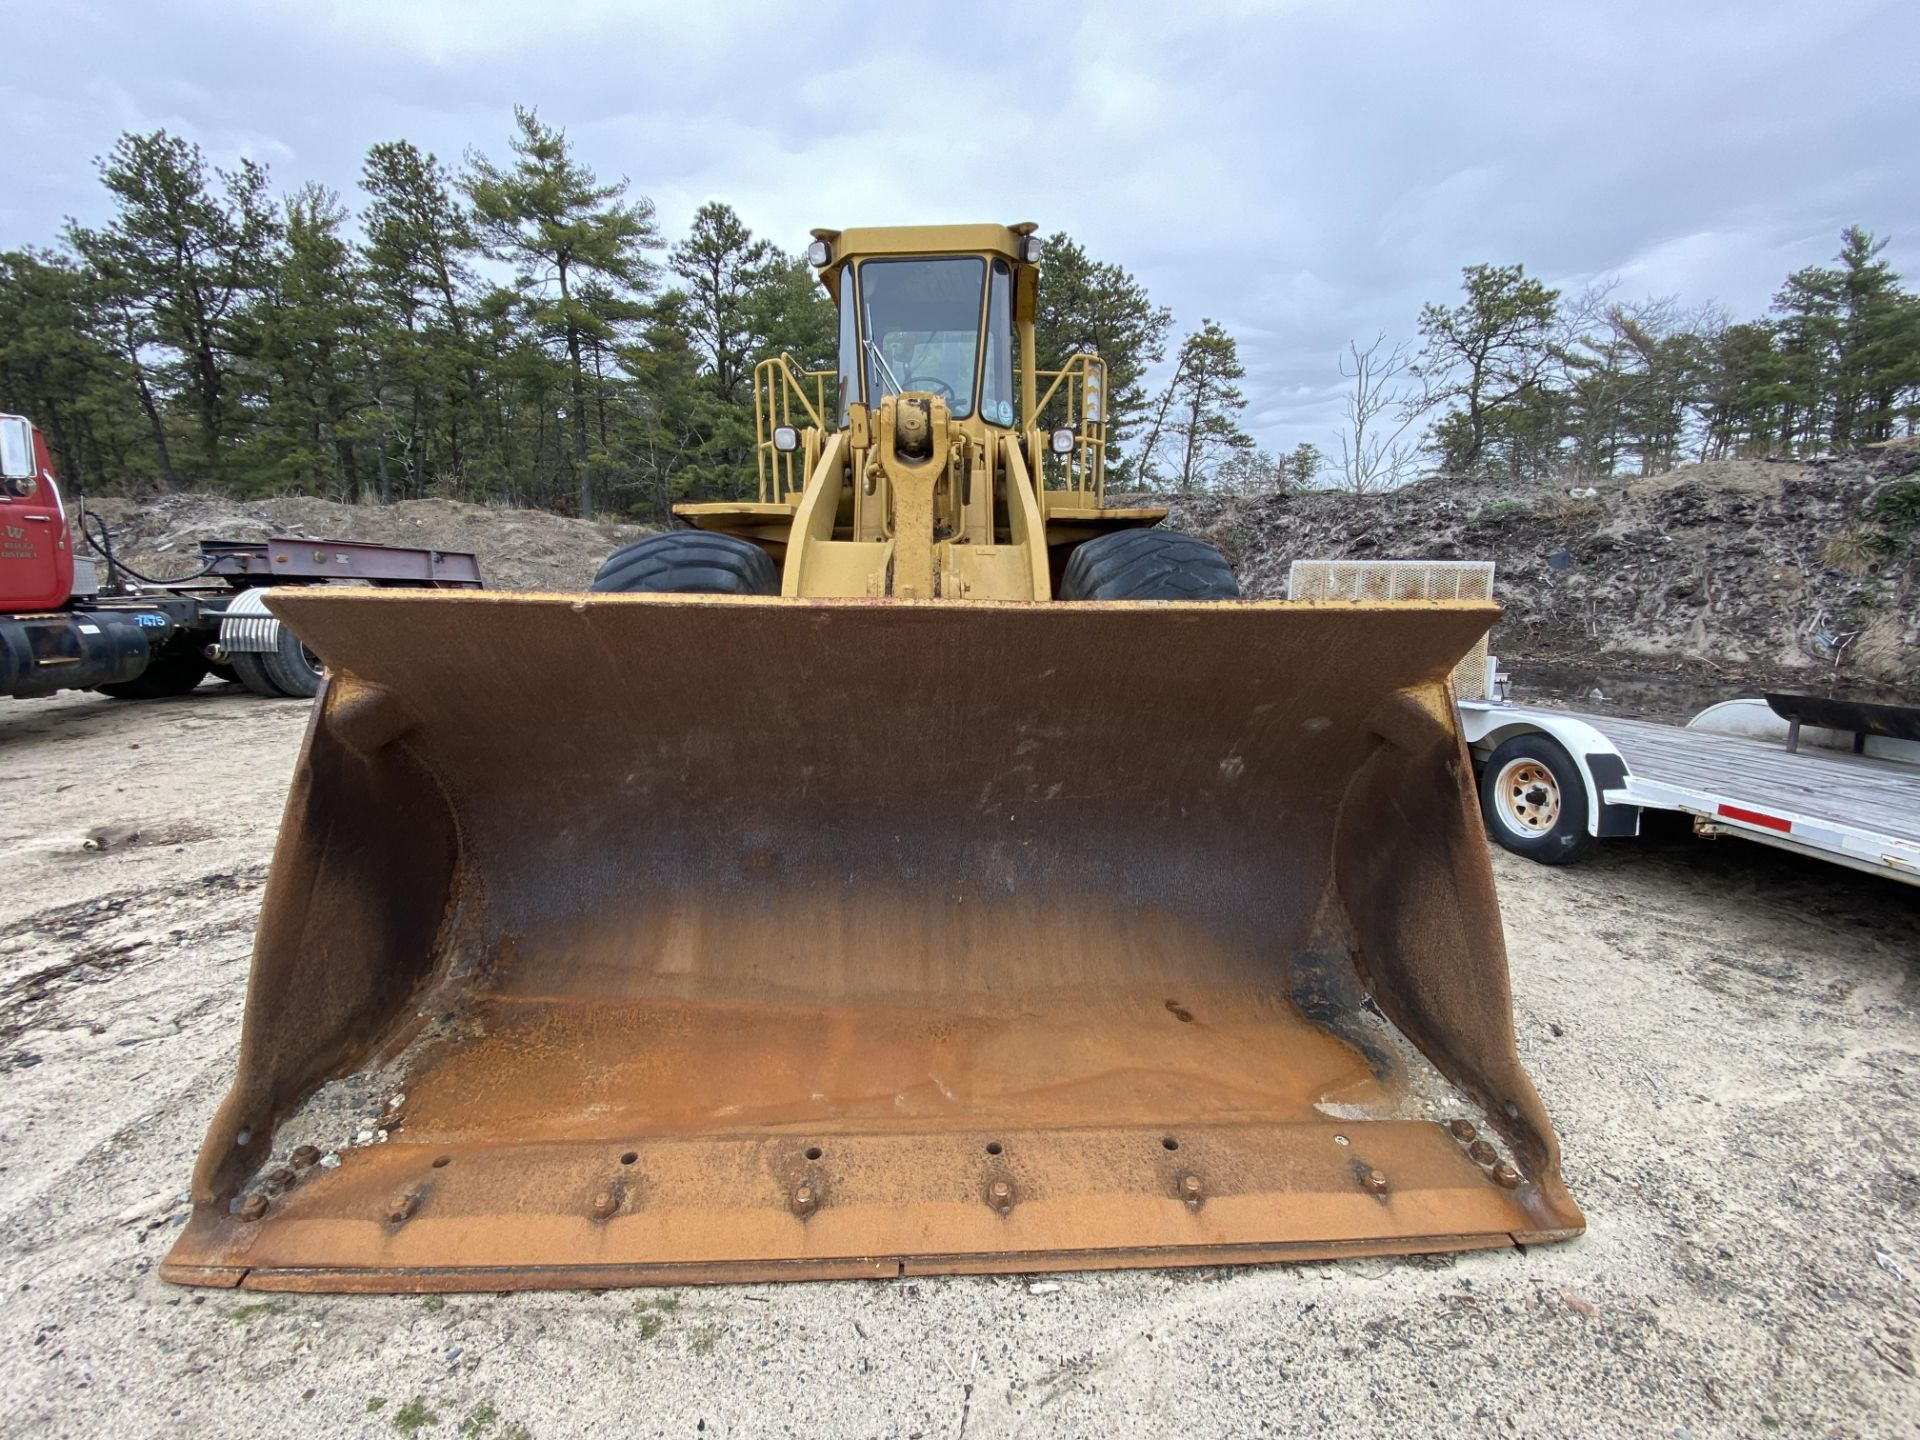 1980 Caterpillar 966D Wheel Loader s/n 99Y02108, Meter Reads 4,664 Hours, Have Title - Image 19 of 23